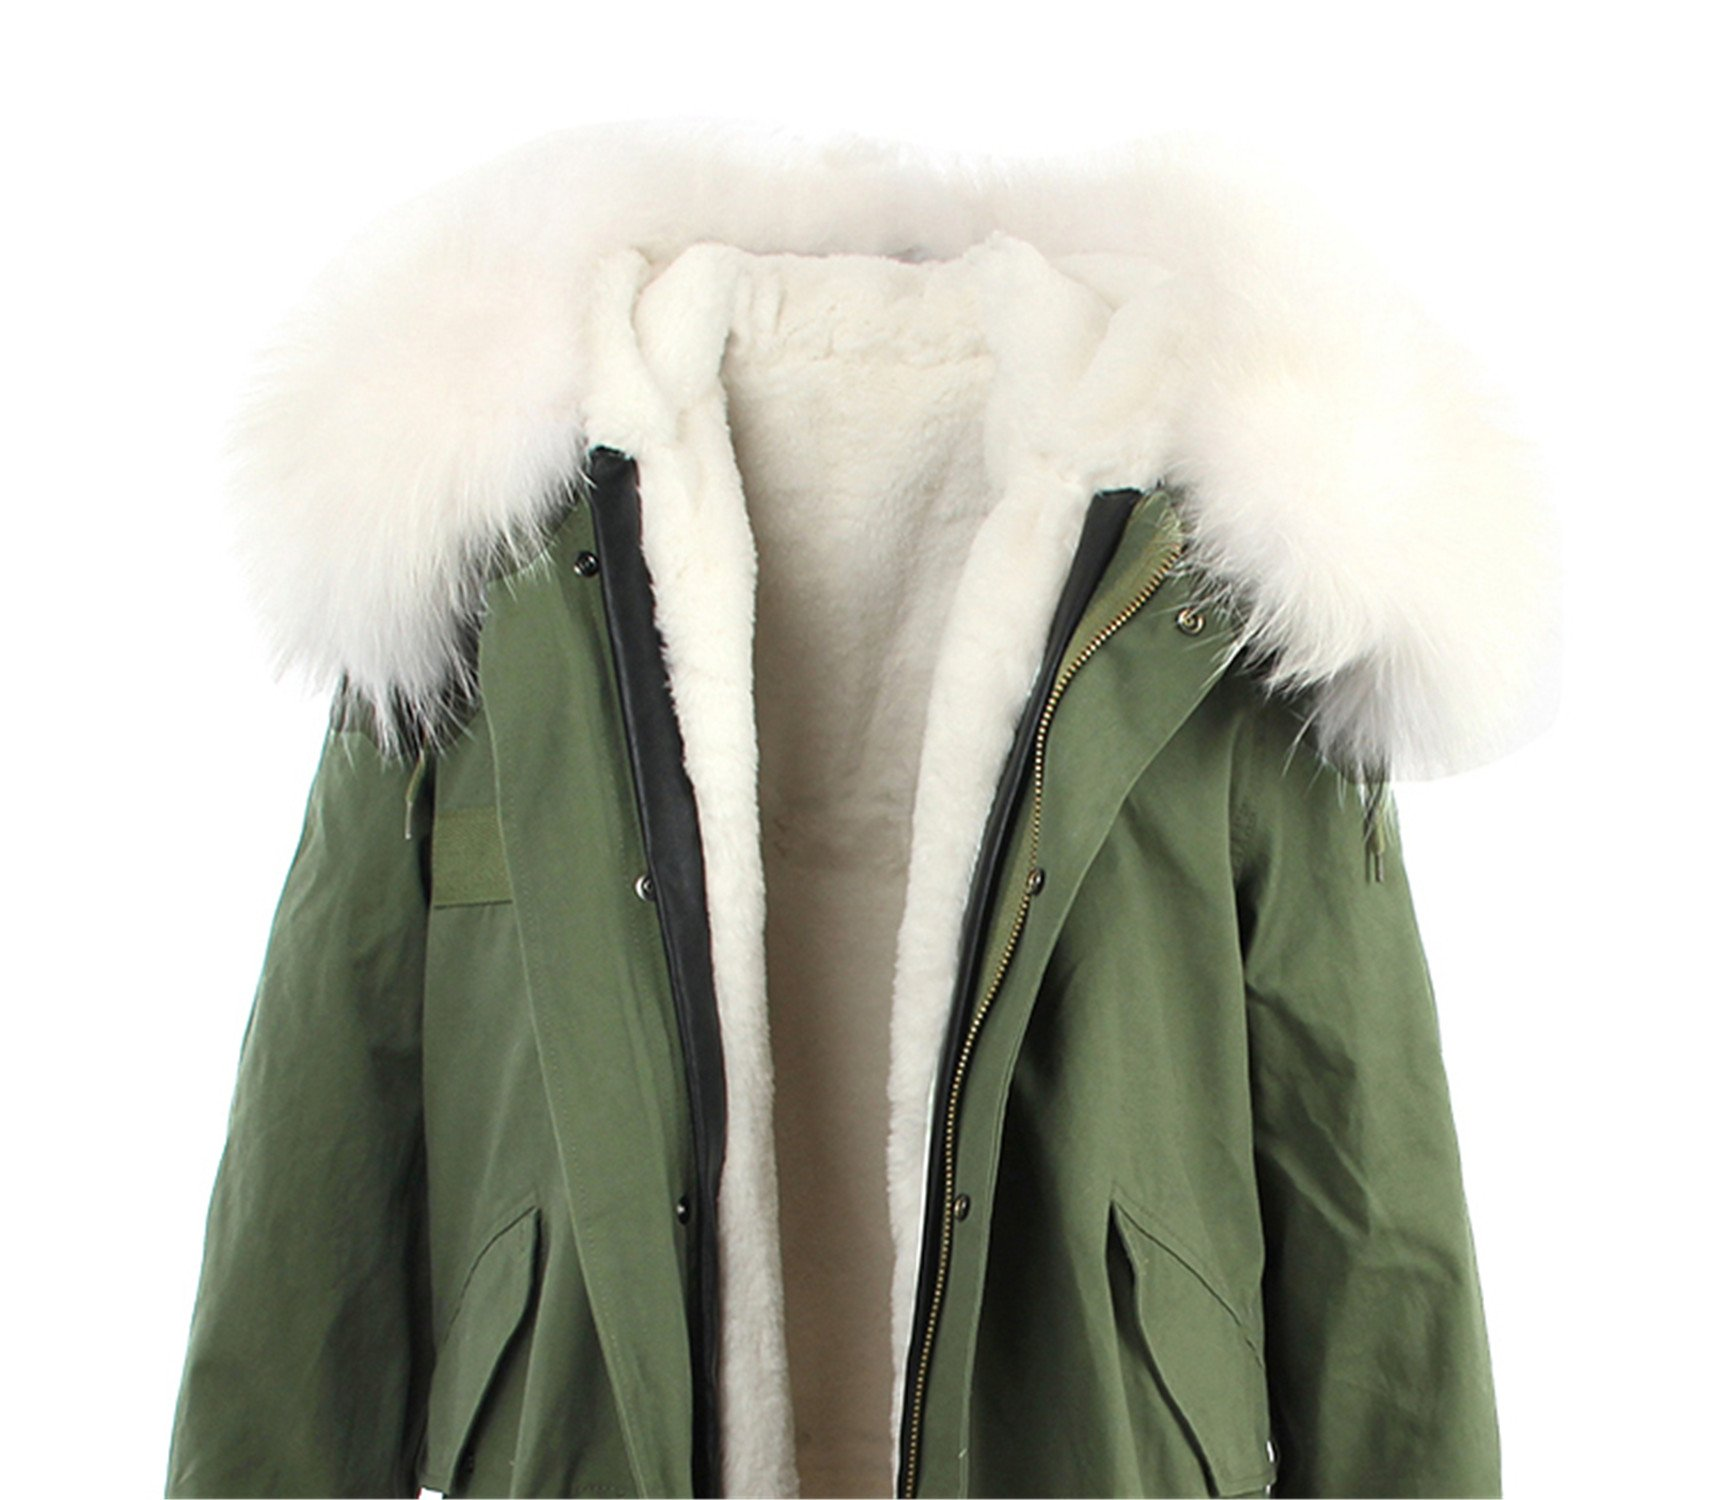 ADC-Hotsell woman army green Large raccoon fur collar hooded coat outwear 2 in 1 detachable lining winter jacket brand style color 22 XXL by ADC-Hotsell quilted-lightweight-jackets